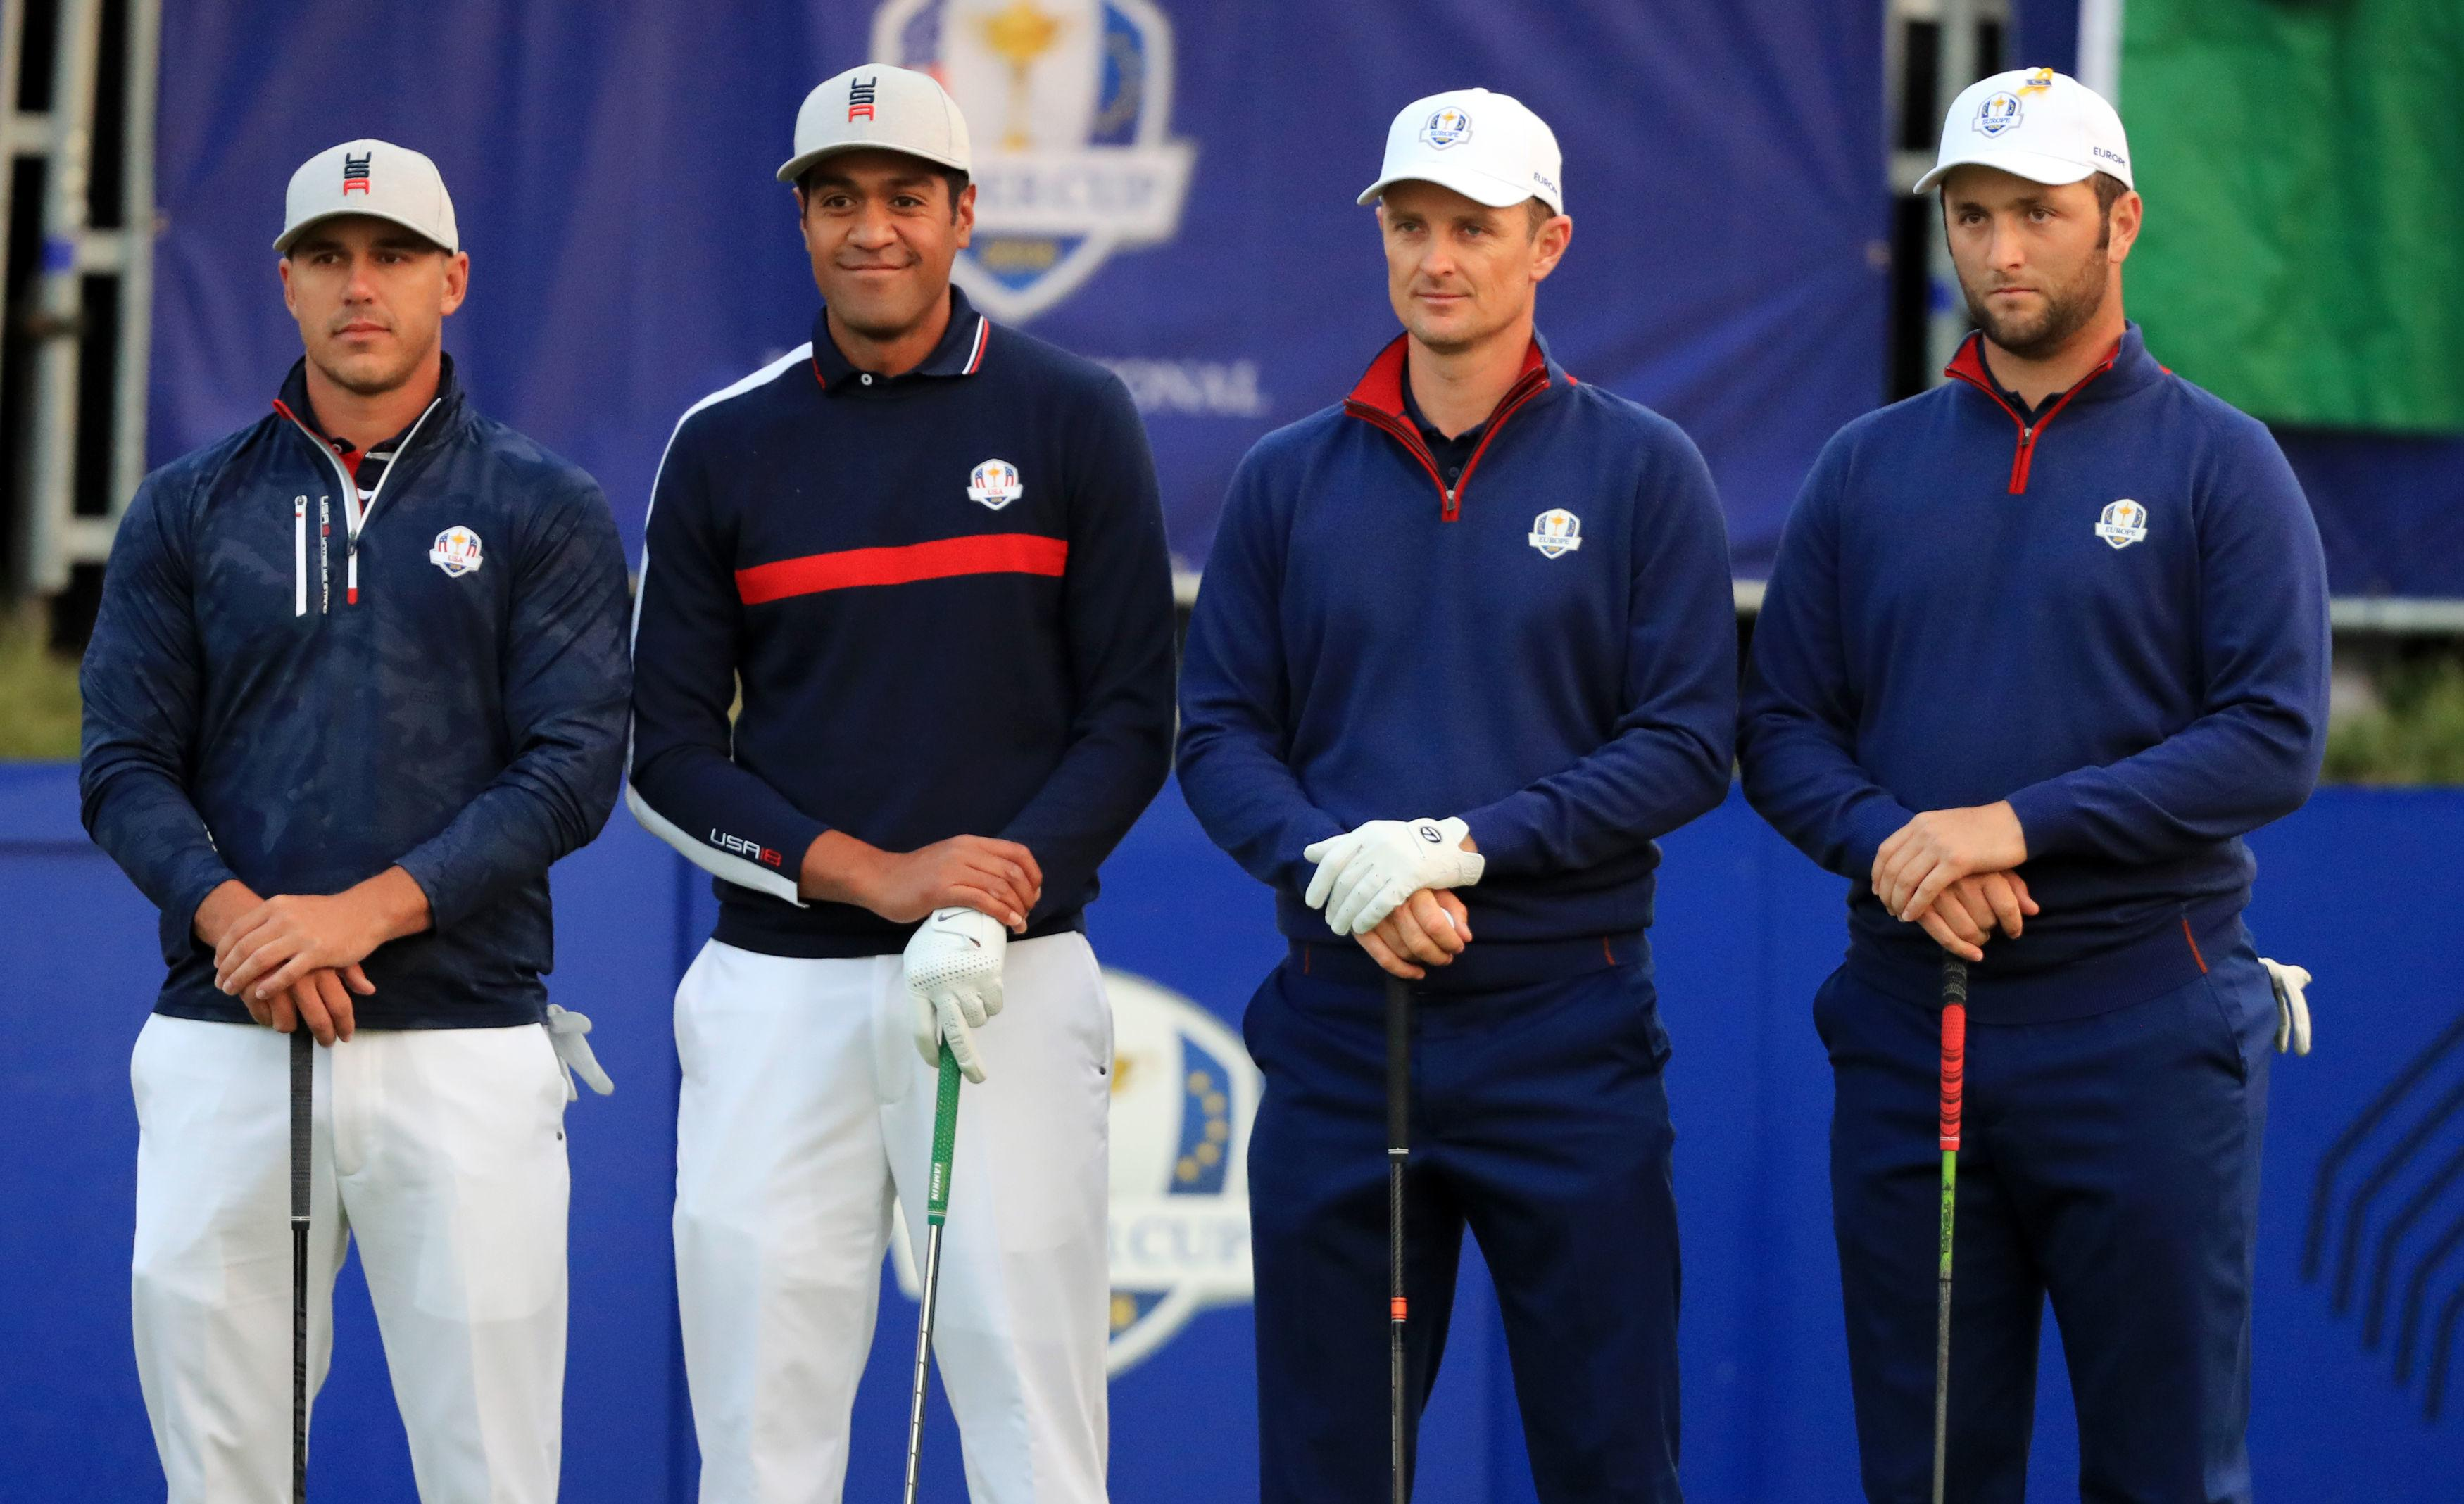 The Englishman contributed to the Ryder Cup win in Paris